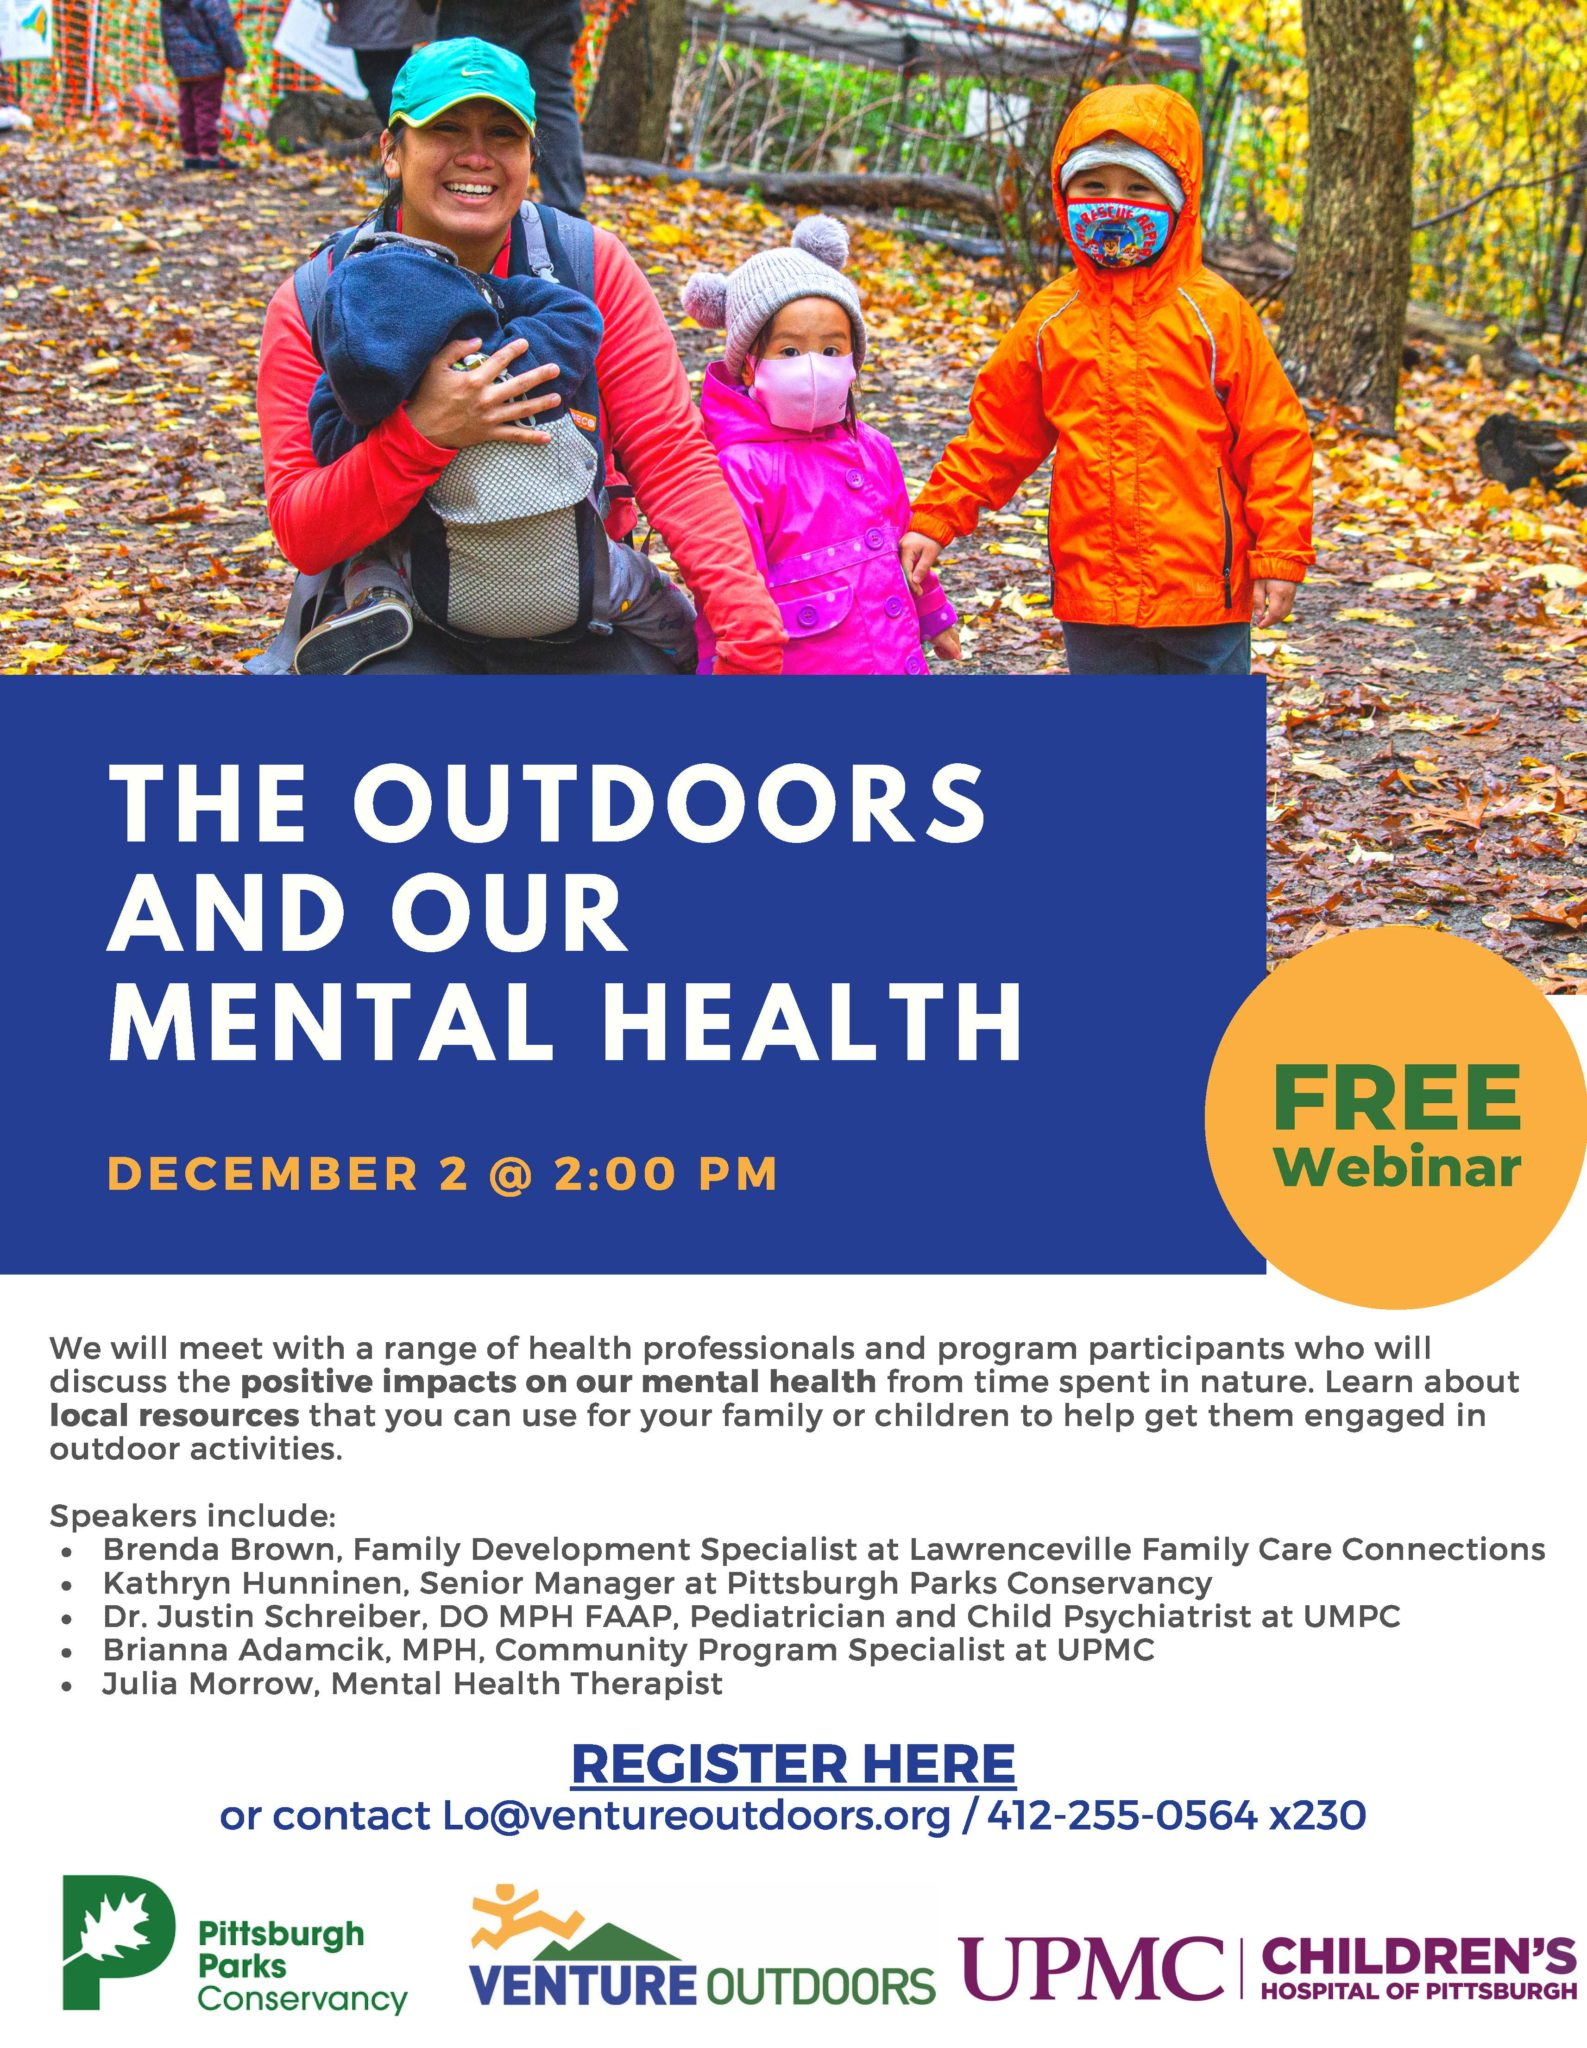 The Outdoors and Our Mental Health graphic